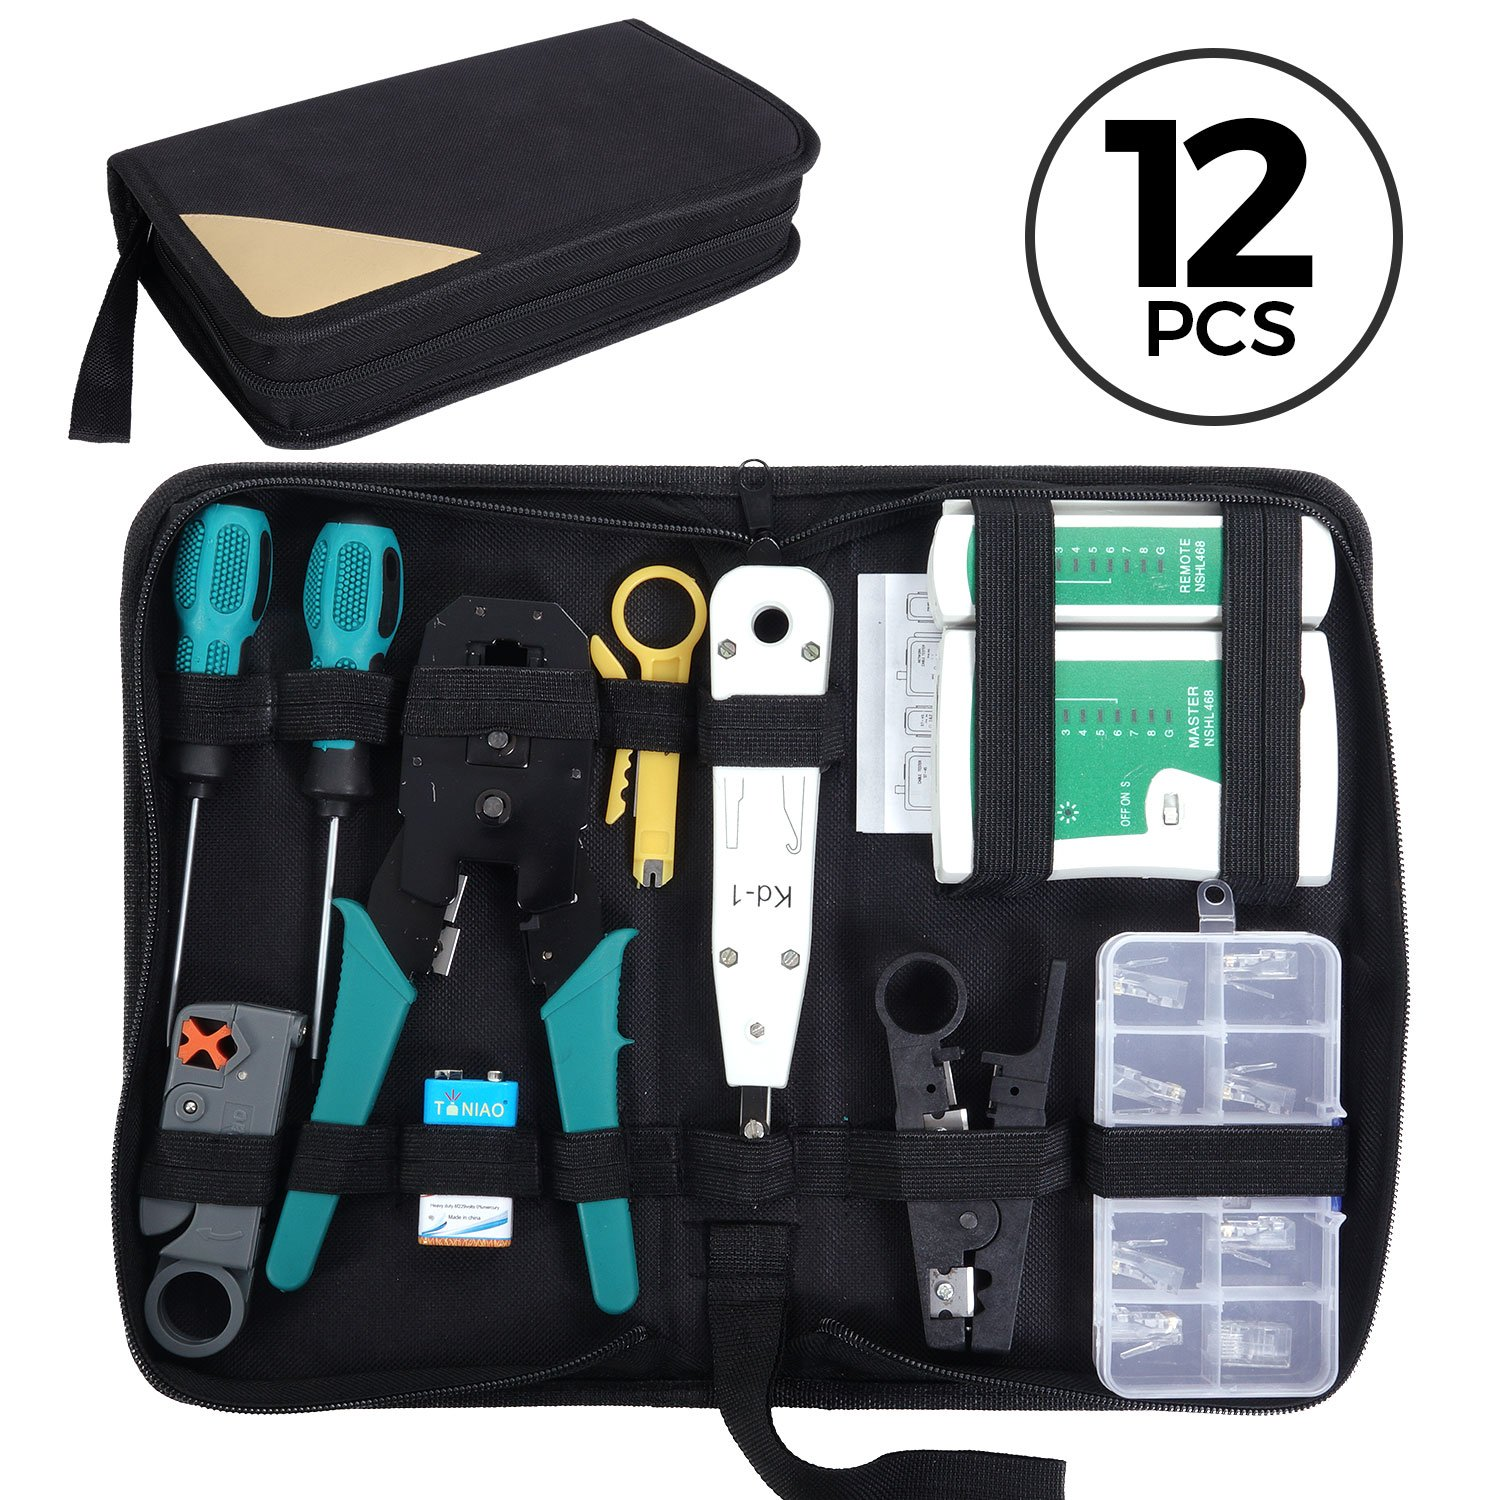 SGILE 12 in 1 Network Repair Kits Professional Network Tools Kits Computer Maintenacnce Lan Cable Tester Computer & Mobile Device Repair Kits